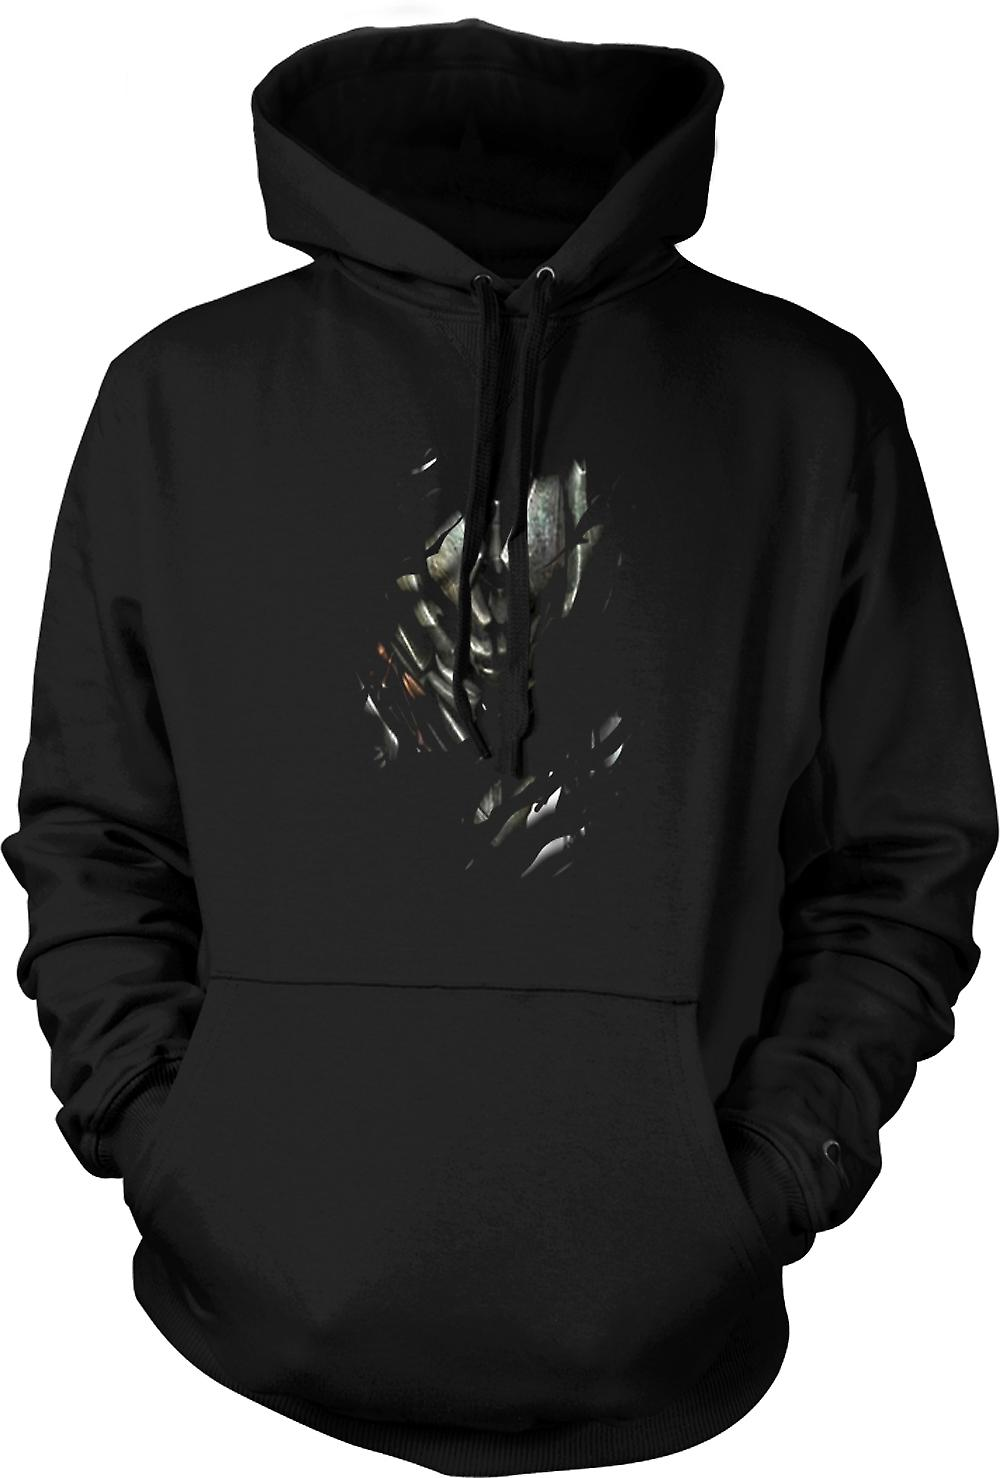 Mens Hoodie - Megatron Ripped Design - Transformers Inspired